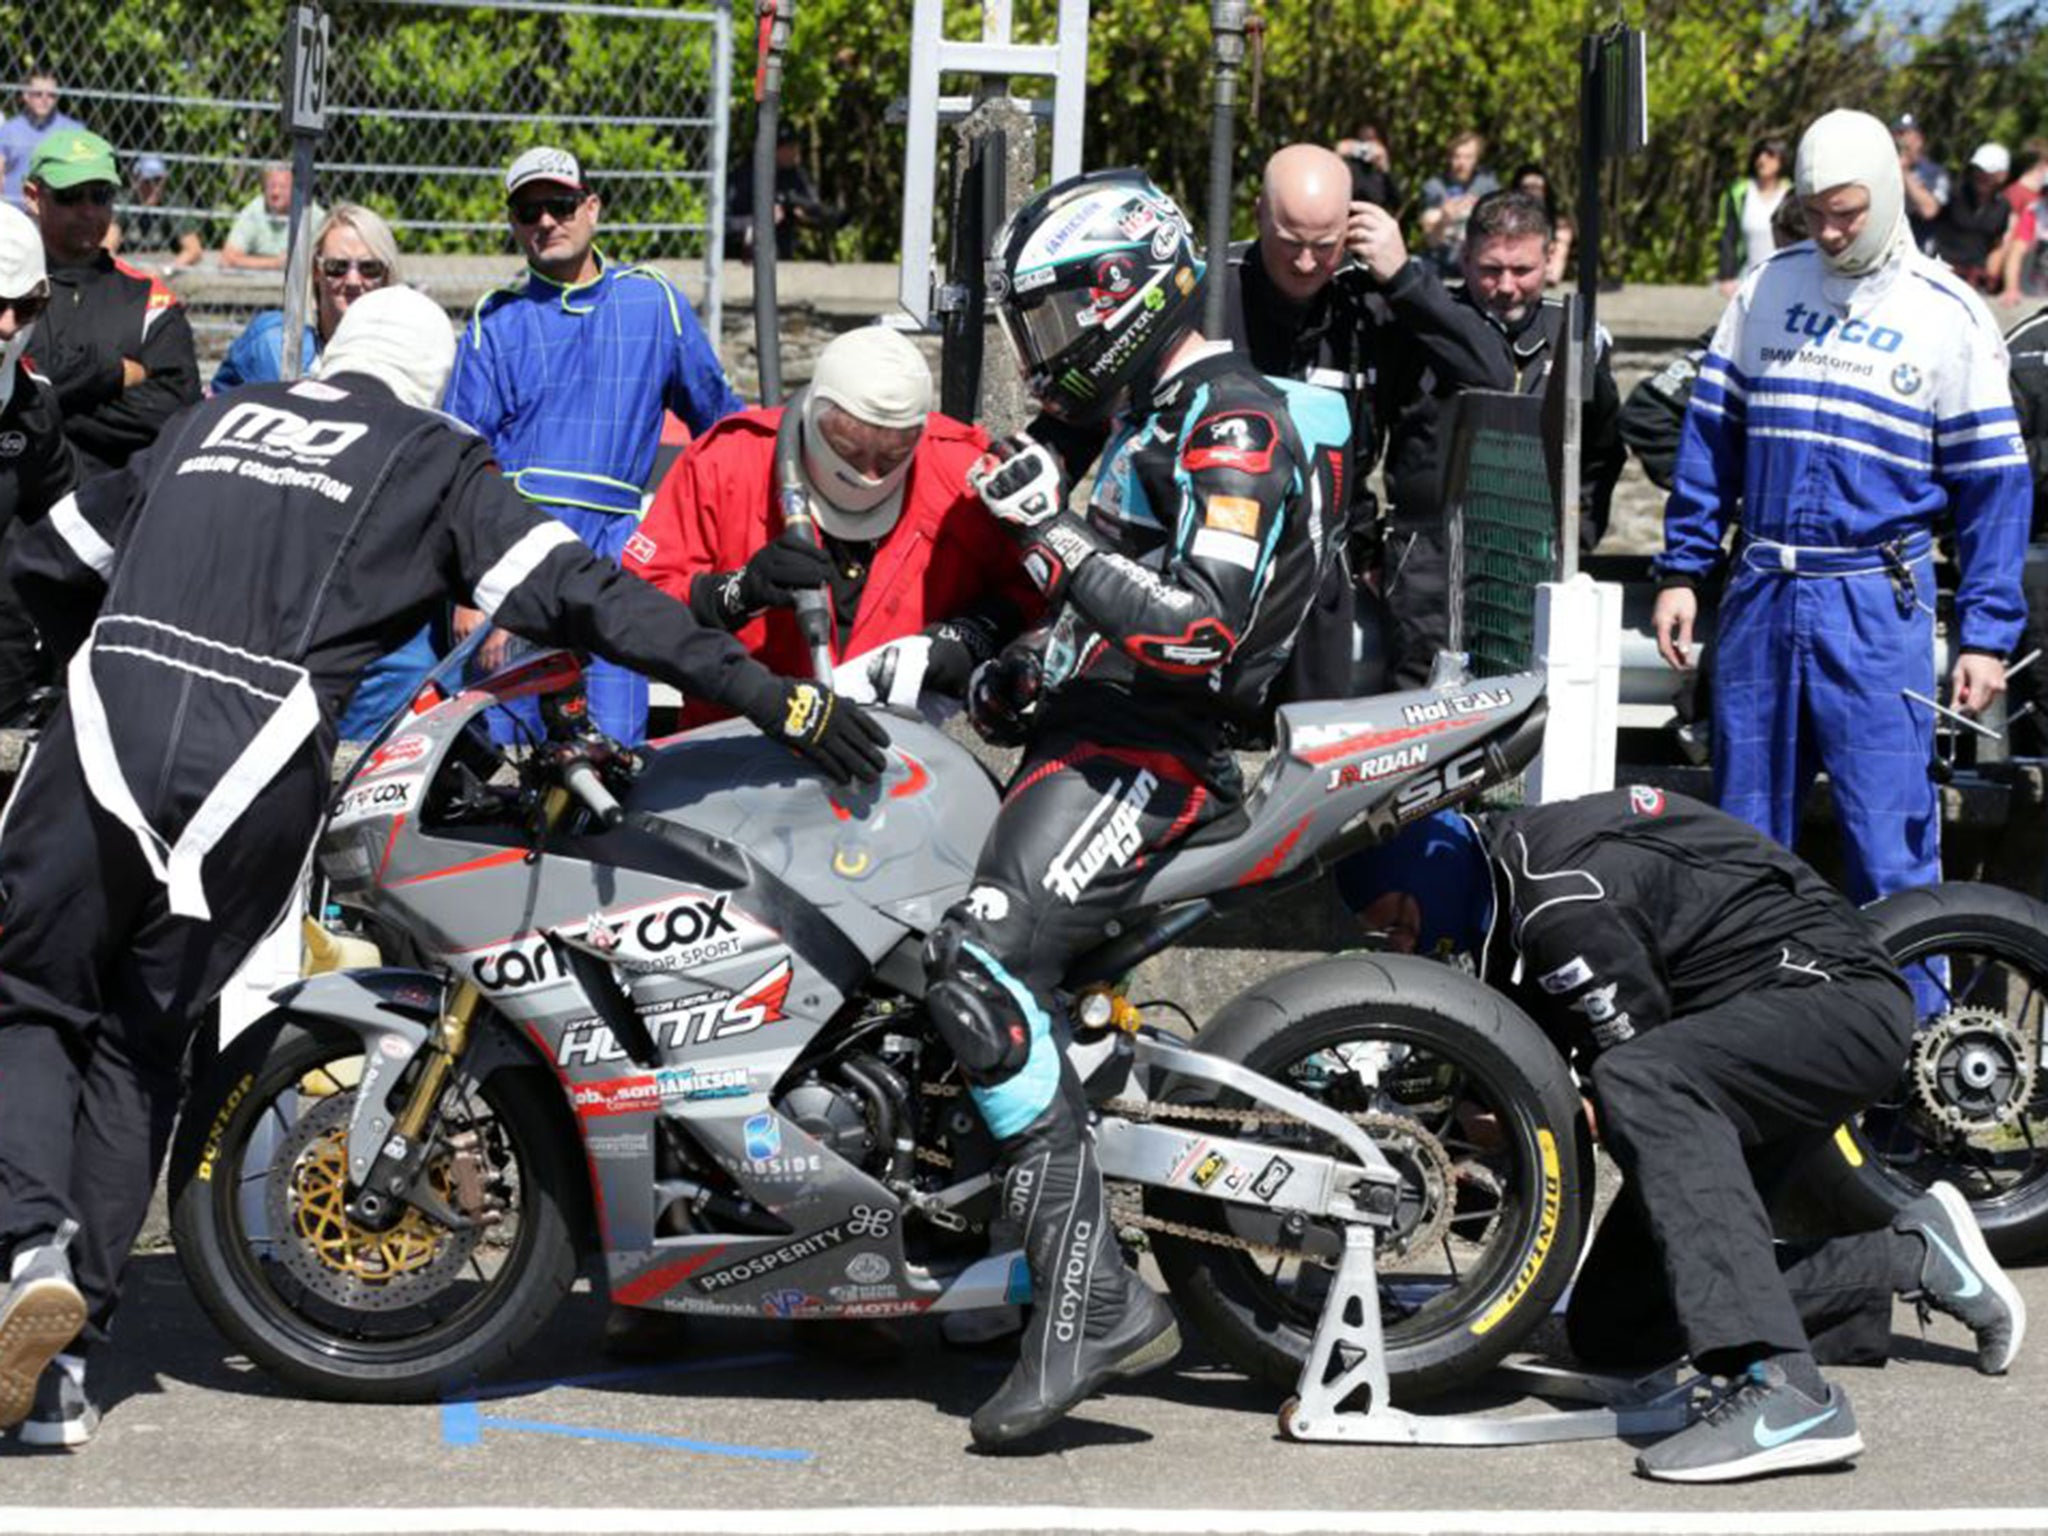 Isle of Man TT 2019: Full race schedule and TV details, how